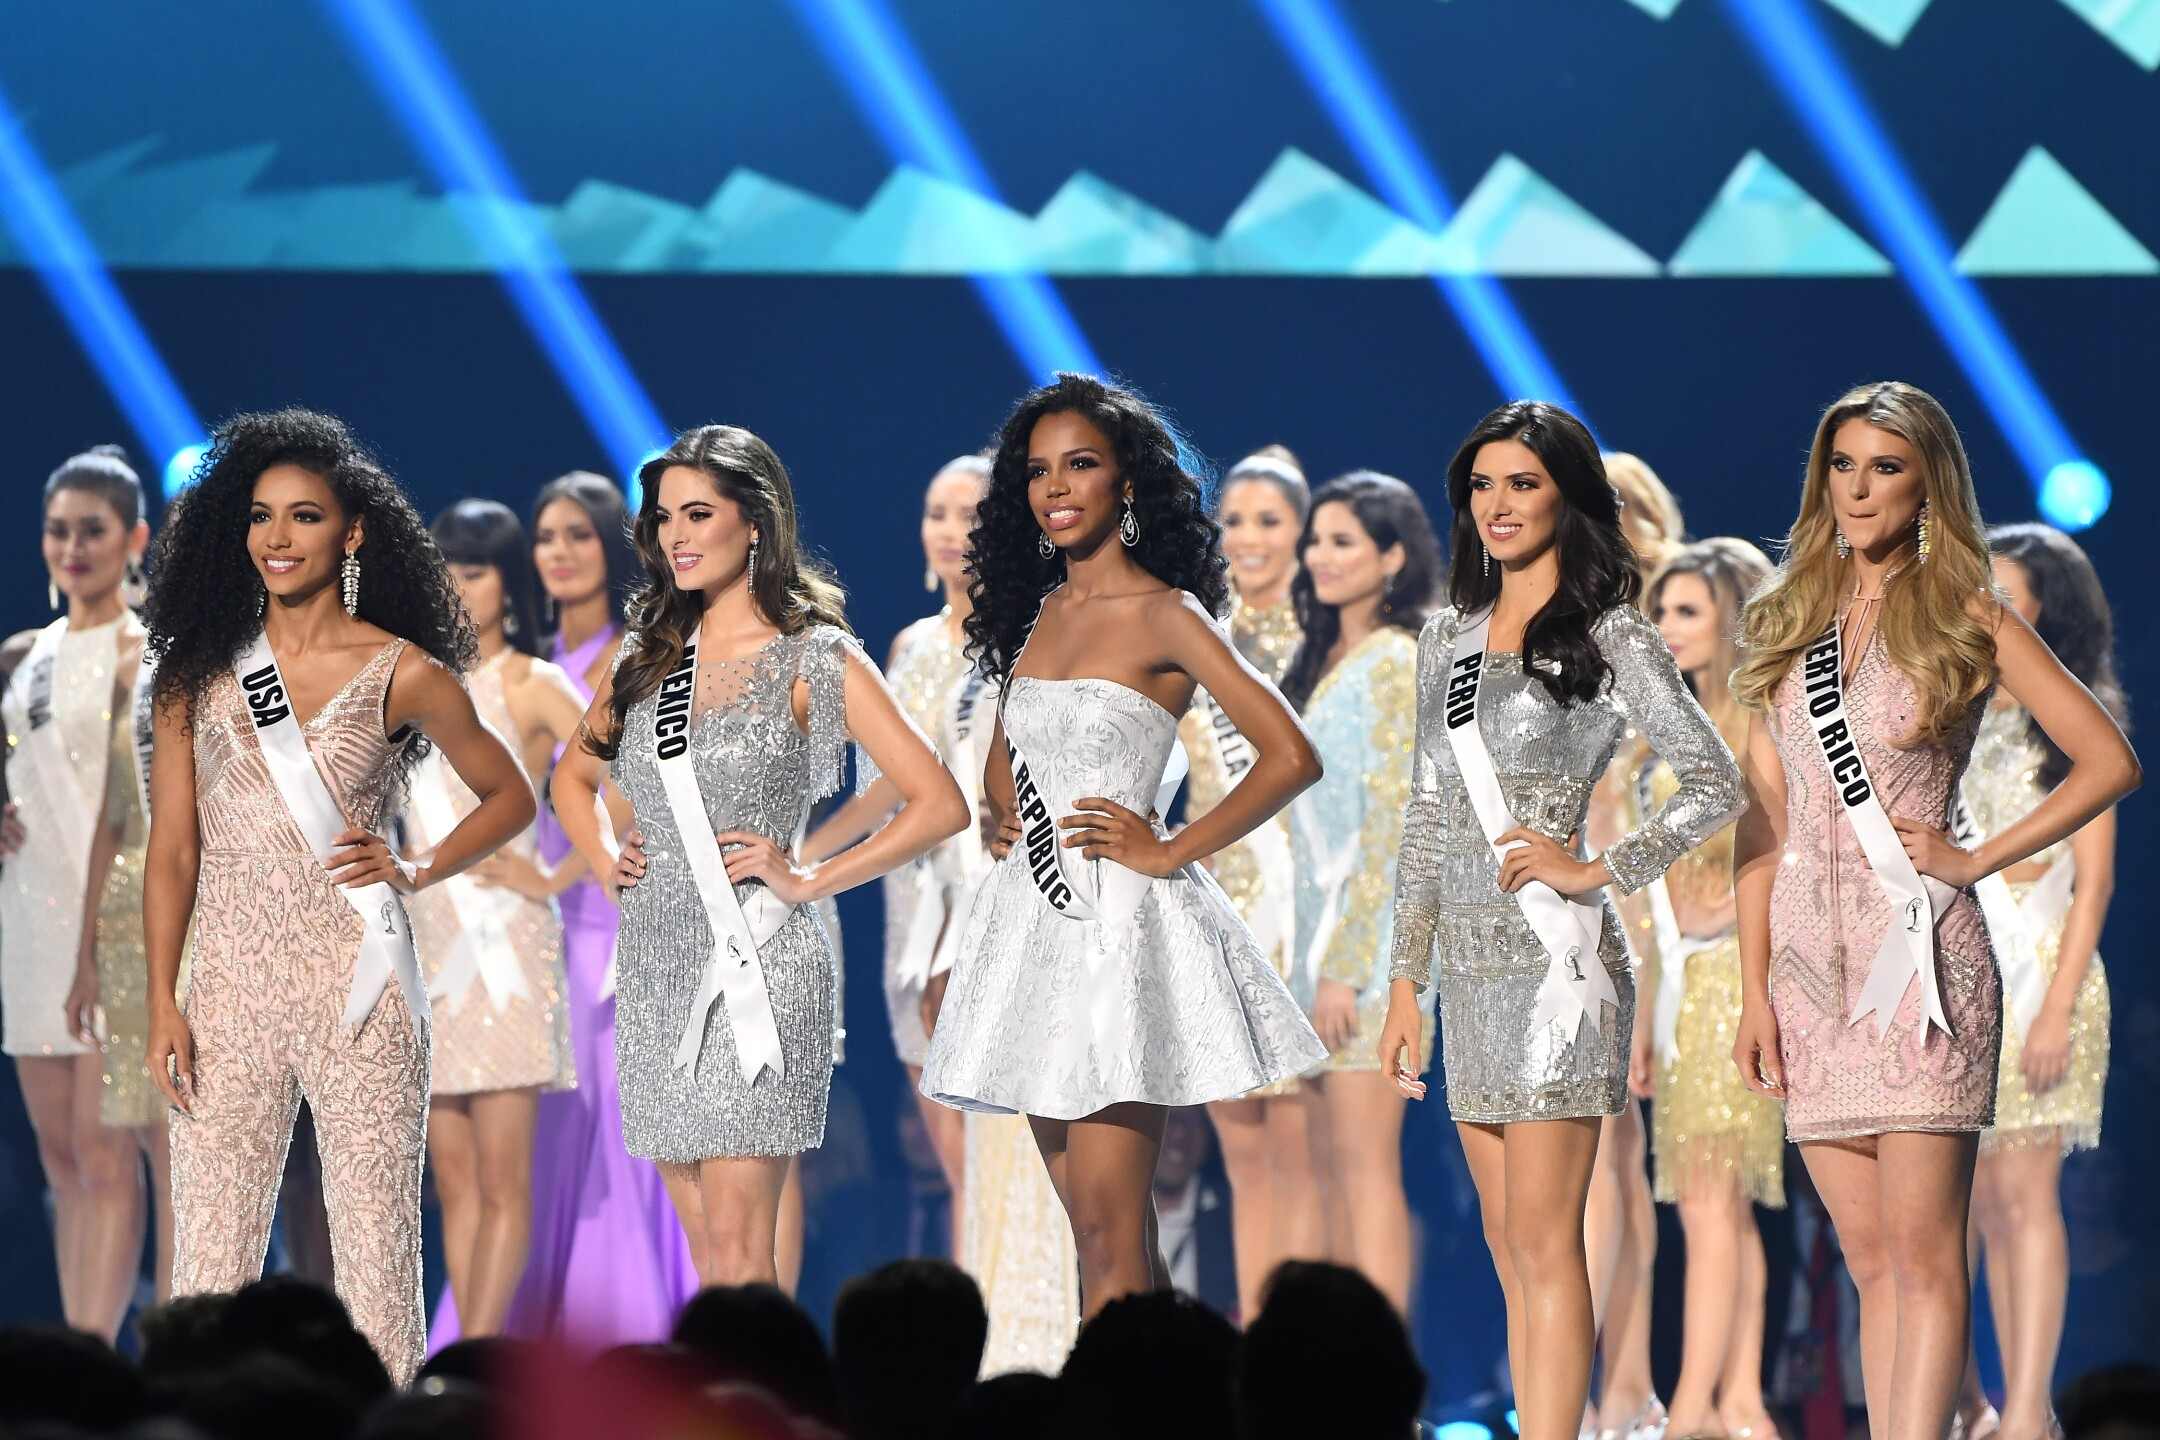 The 2019 Miss Universe Pageant - Show